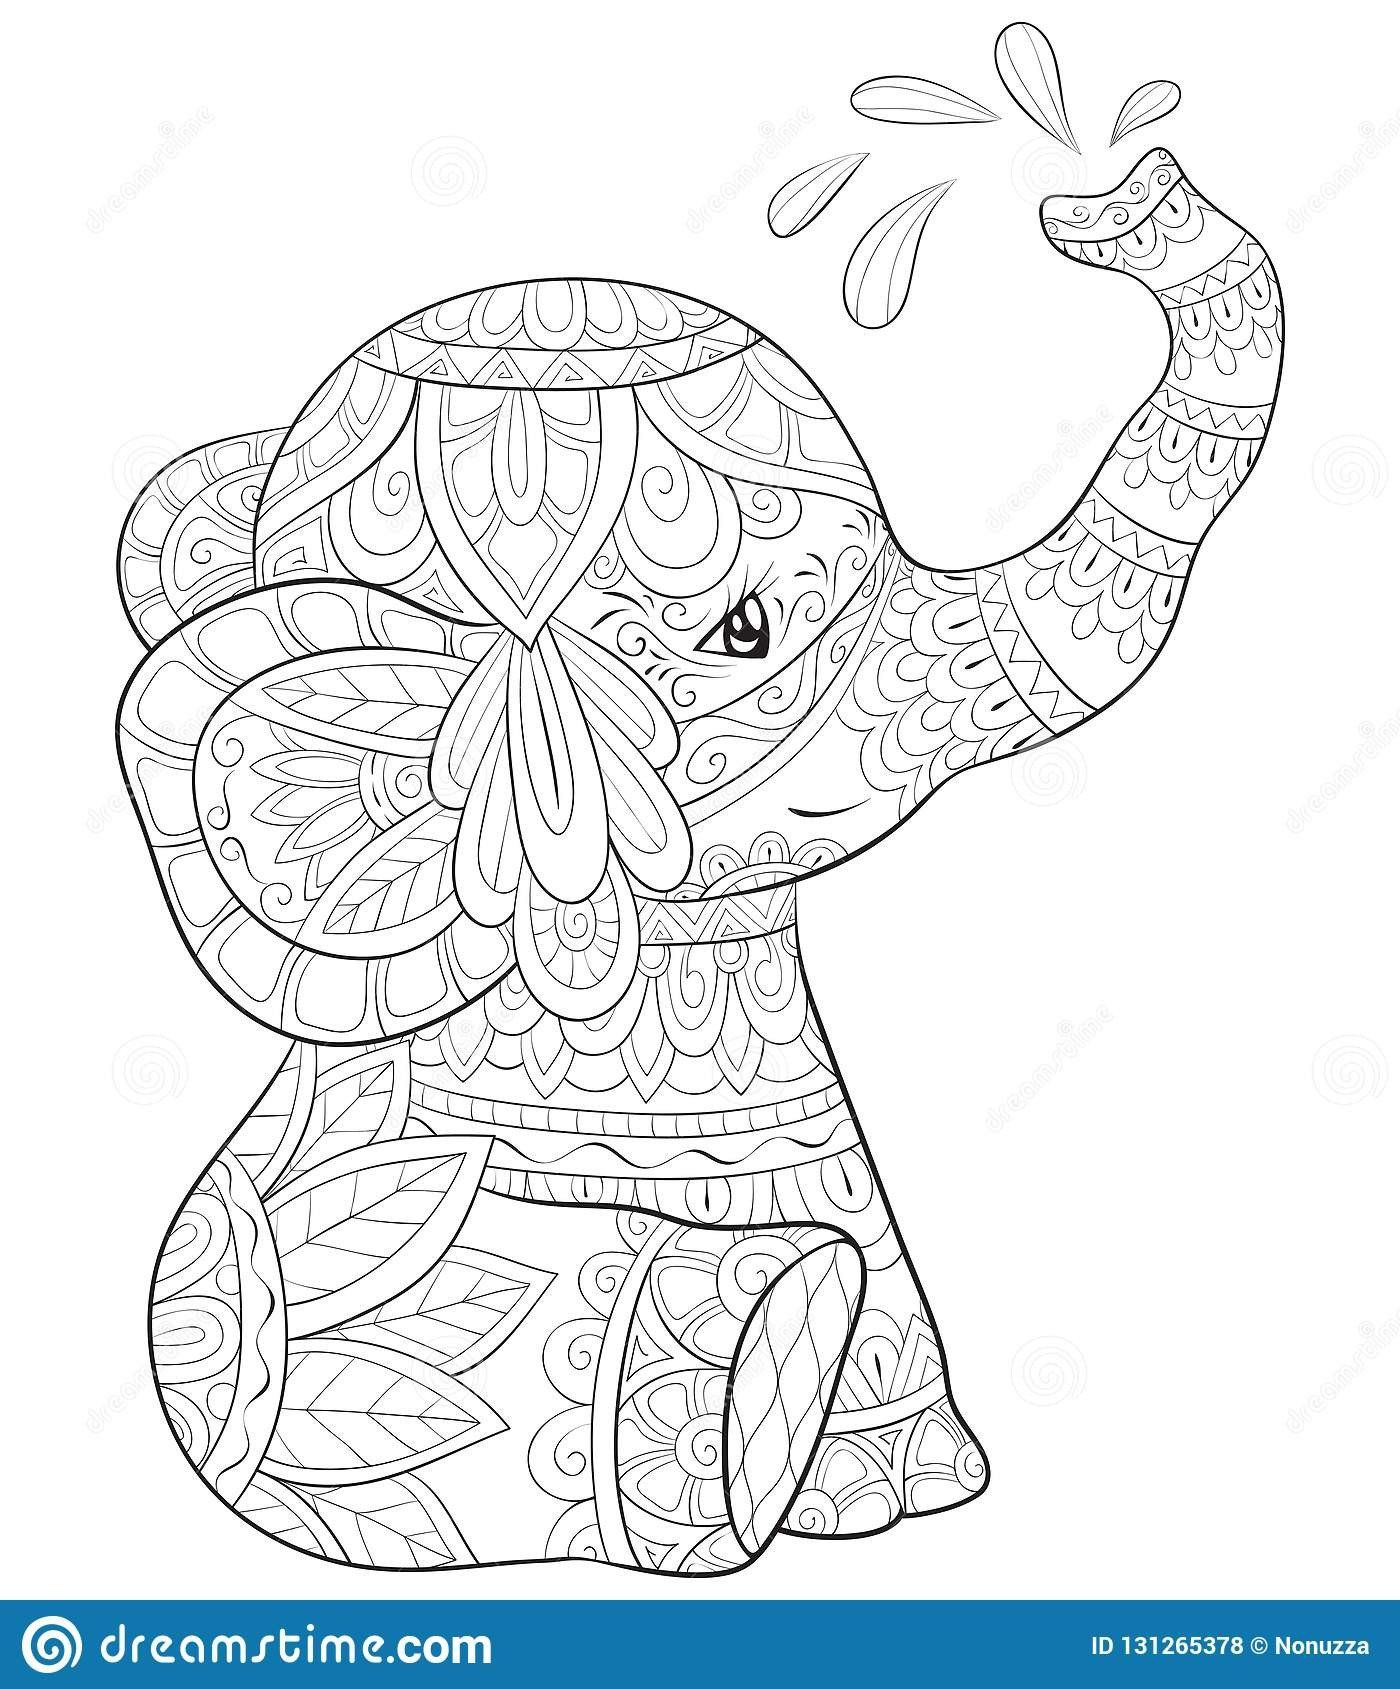 Coloring Pages Of Elephants Coloring Book Coloring Book Tremendous Elephant Buku Mewarnai Pola Zentangle Lukisan Seni